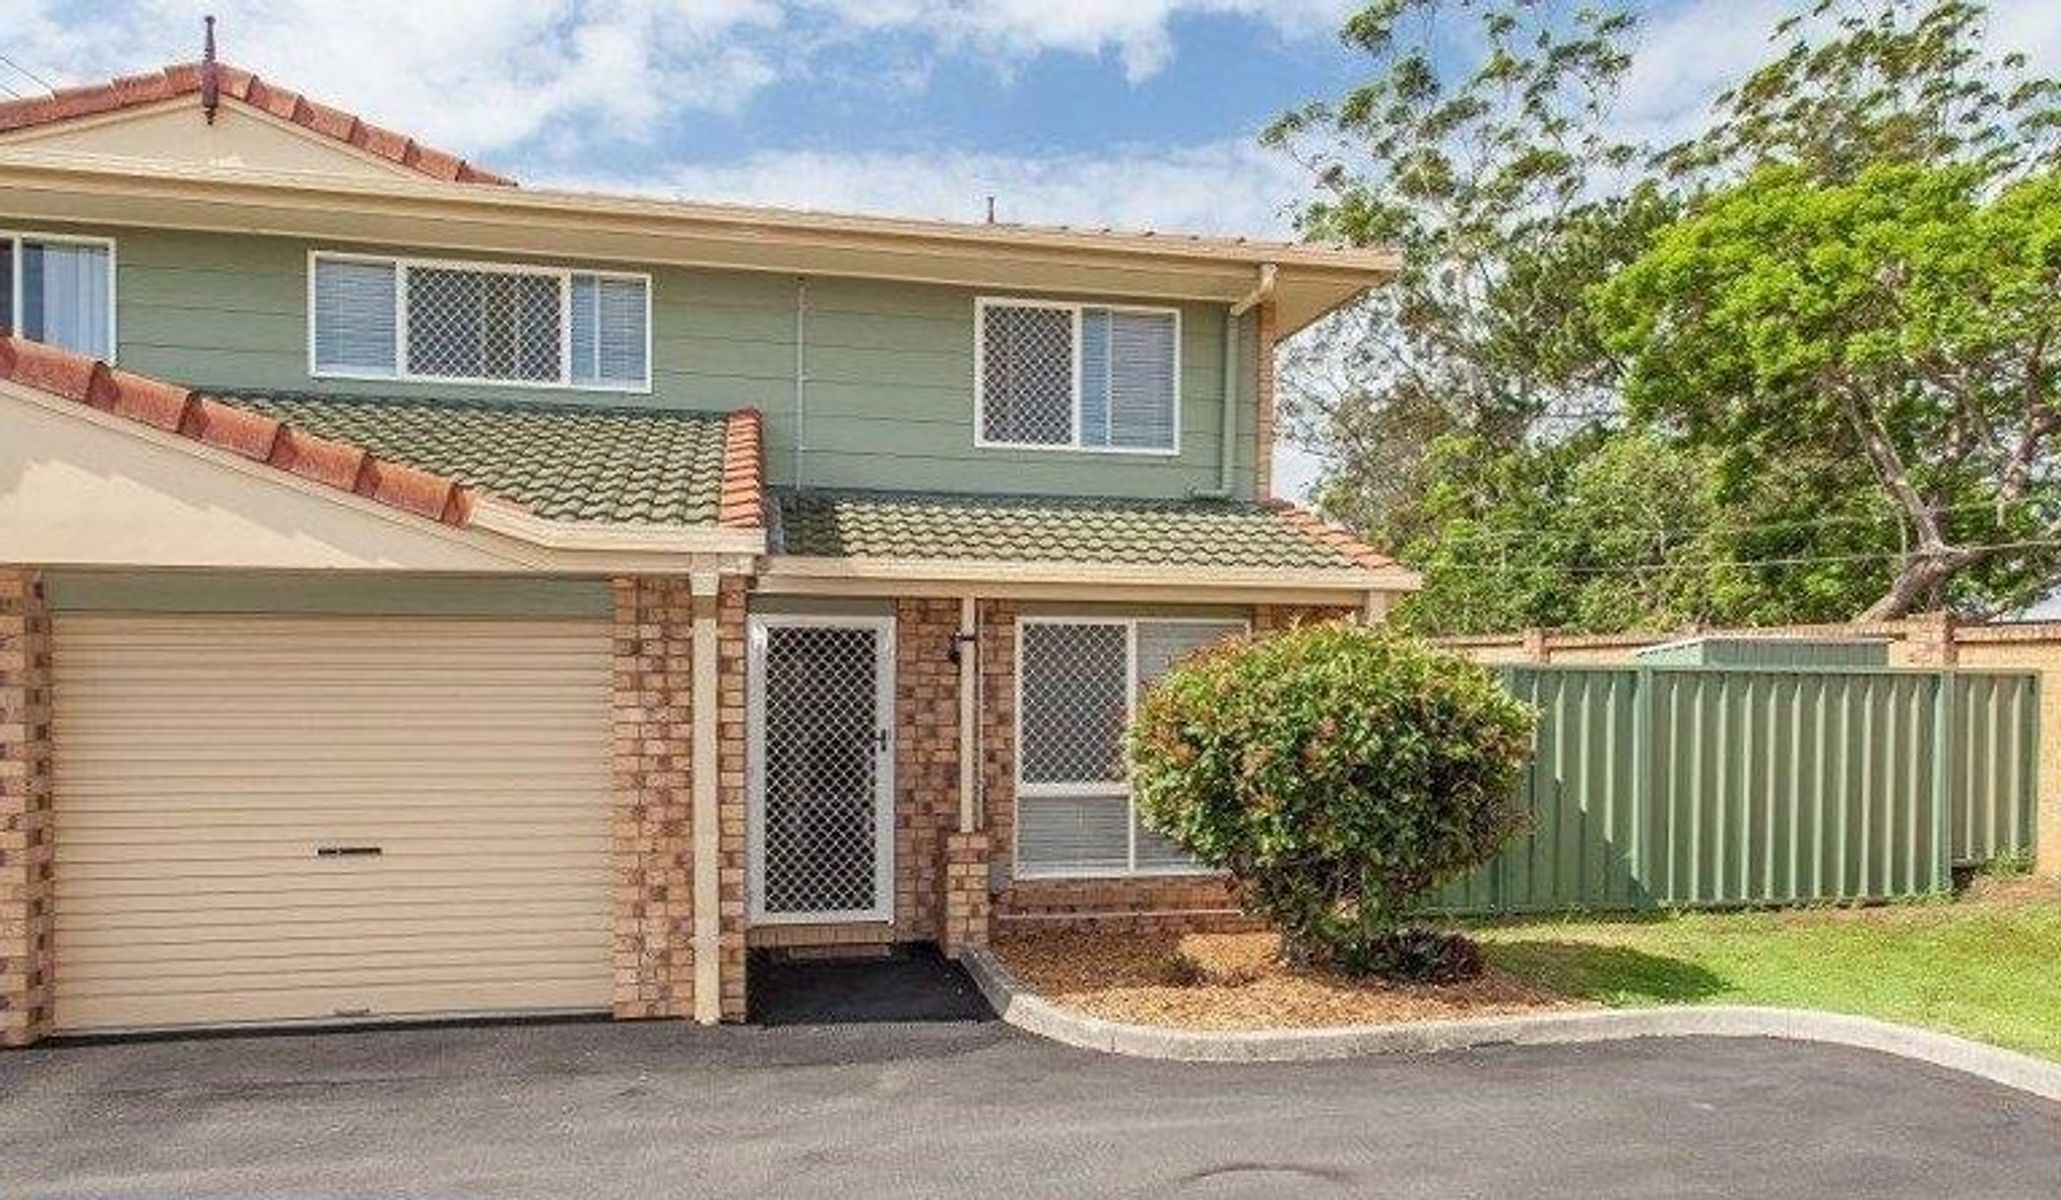 28/10 Harris Road, Underwood, QLD 4119